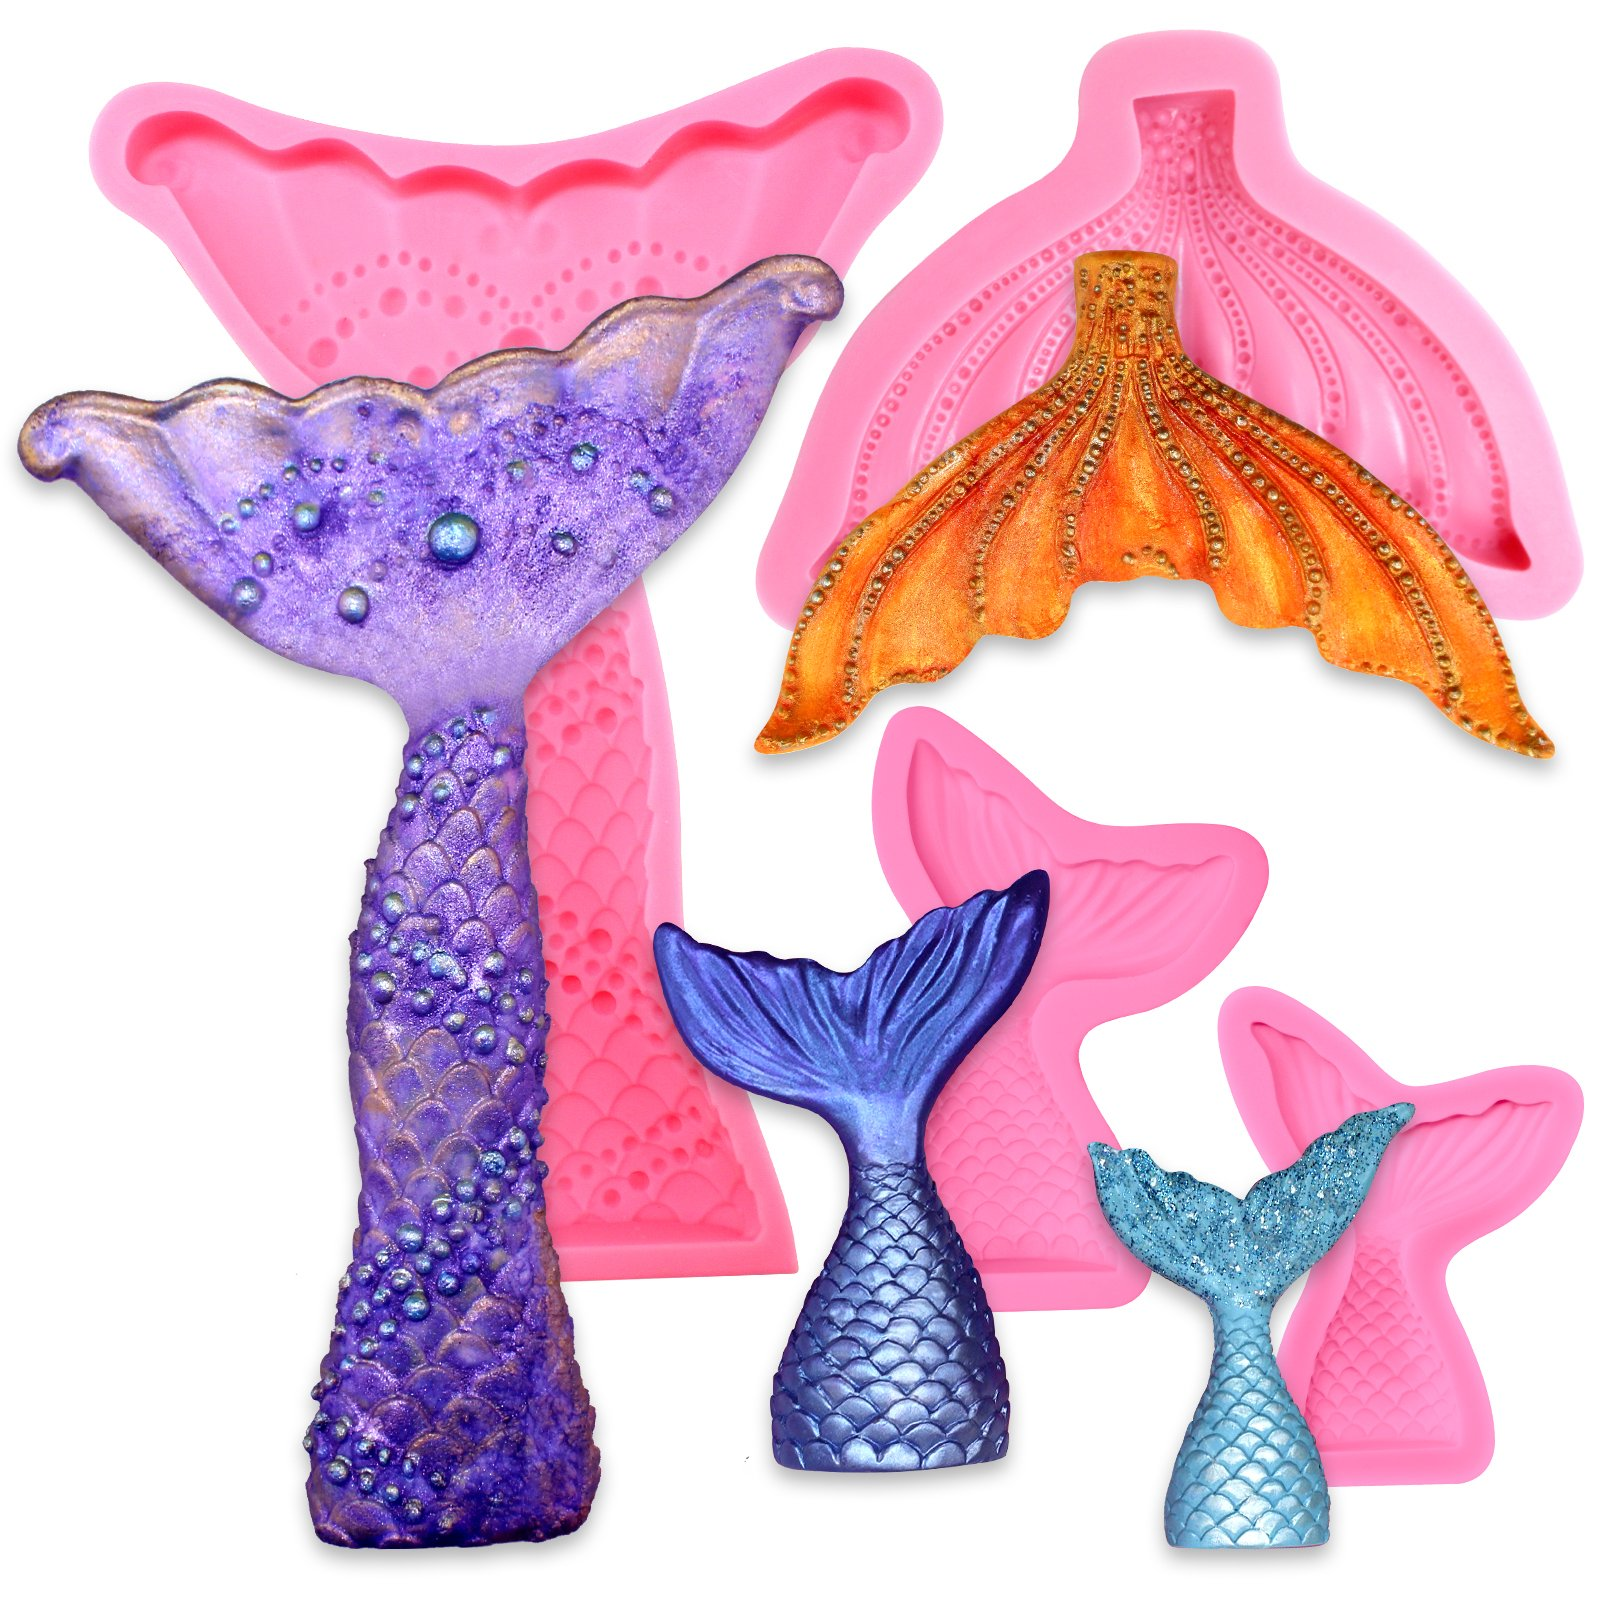 Funshowcase Mermaid Tail and Fin Silicone Mold for Sugarcraft Fondant Cake Decoration, Cupcake Topper, Chocolate, Pastry, Jewelry Making, Polymer Clay, Epoxy Resin, Soap Crafting Projects 4-Count